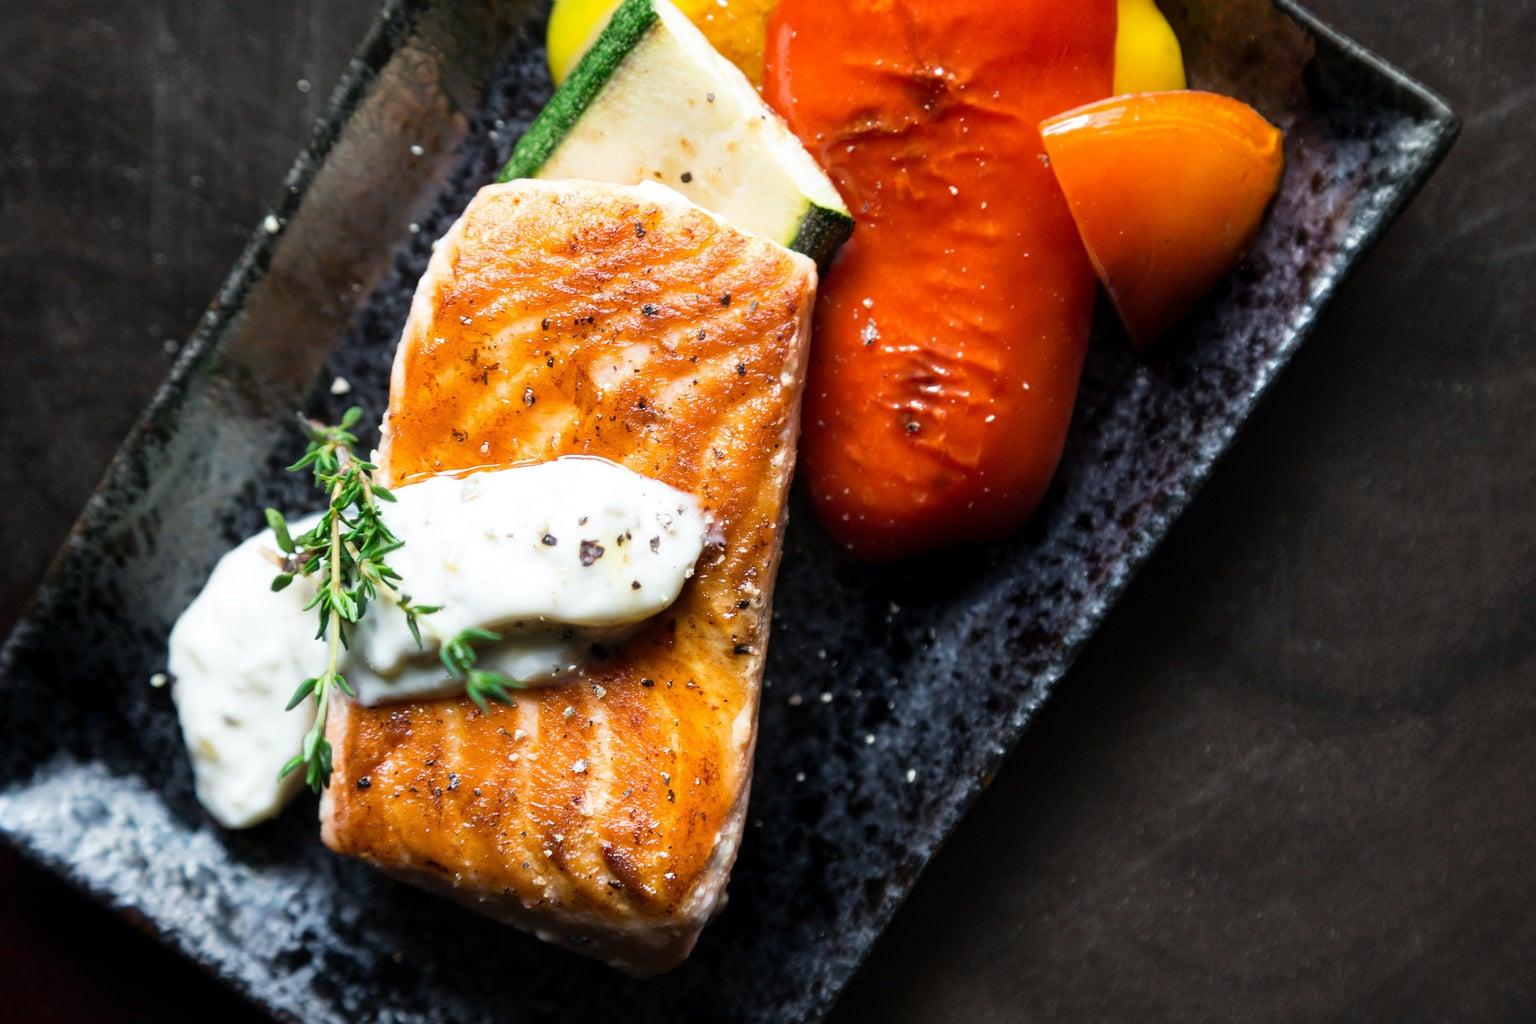 Grilled salmon on a plate